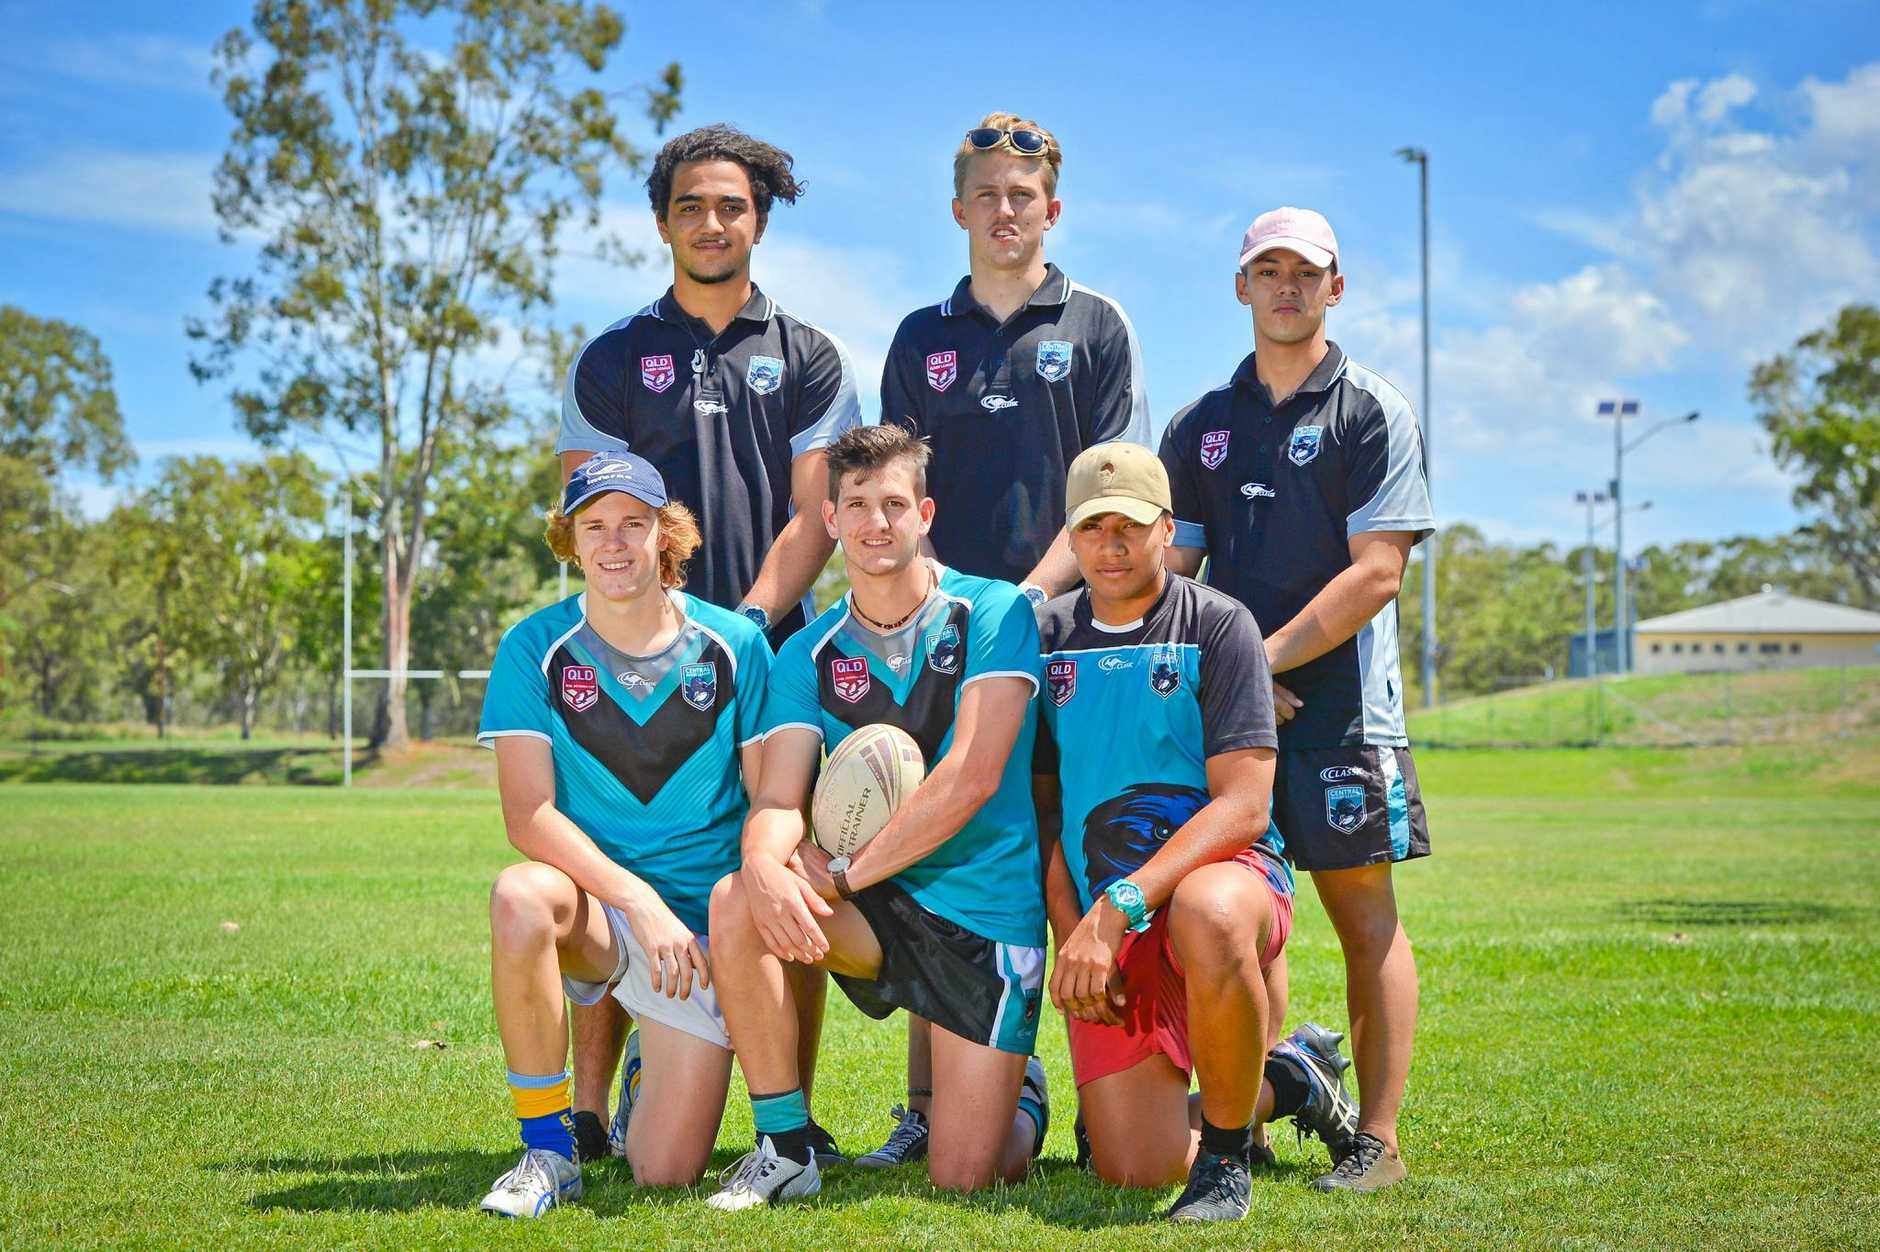 TALENTED: Jai Parter, Mason Collette, James Cody, Will Simpson, Jacob Jahnke with captain Logan Pengelly in the middle. Absent were Ryan Fett and Lachlan Andrews. All eight players are in the Central Crows U18 Mal Meninga squad.